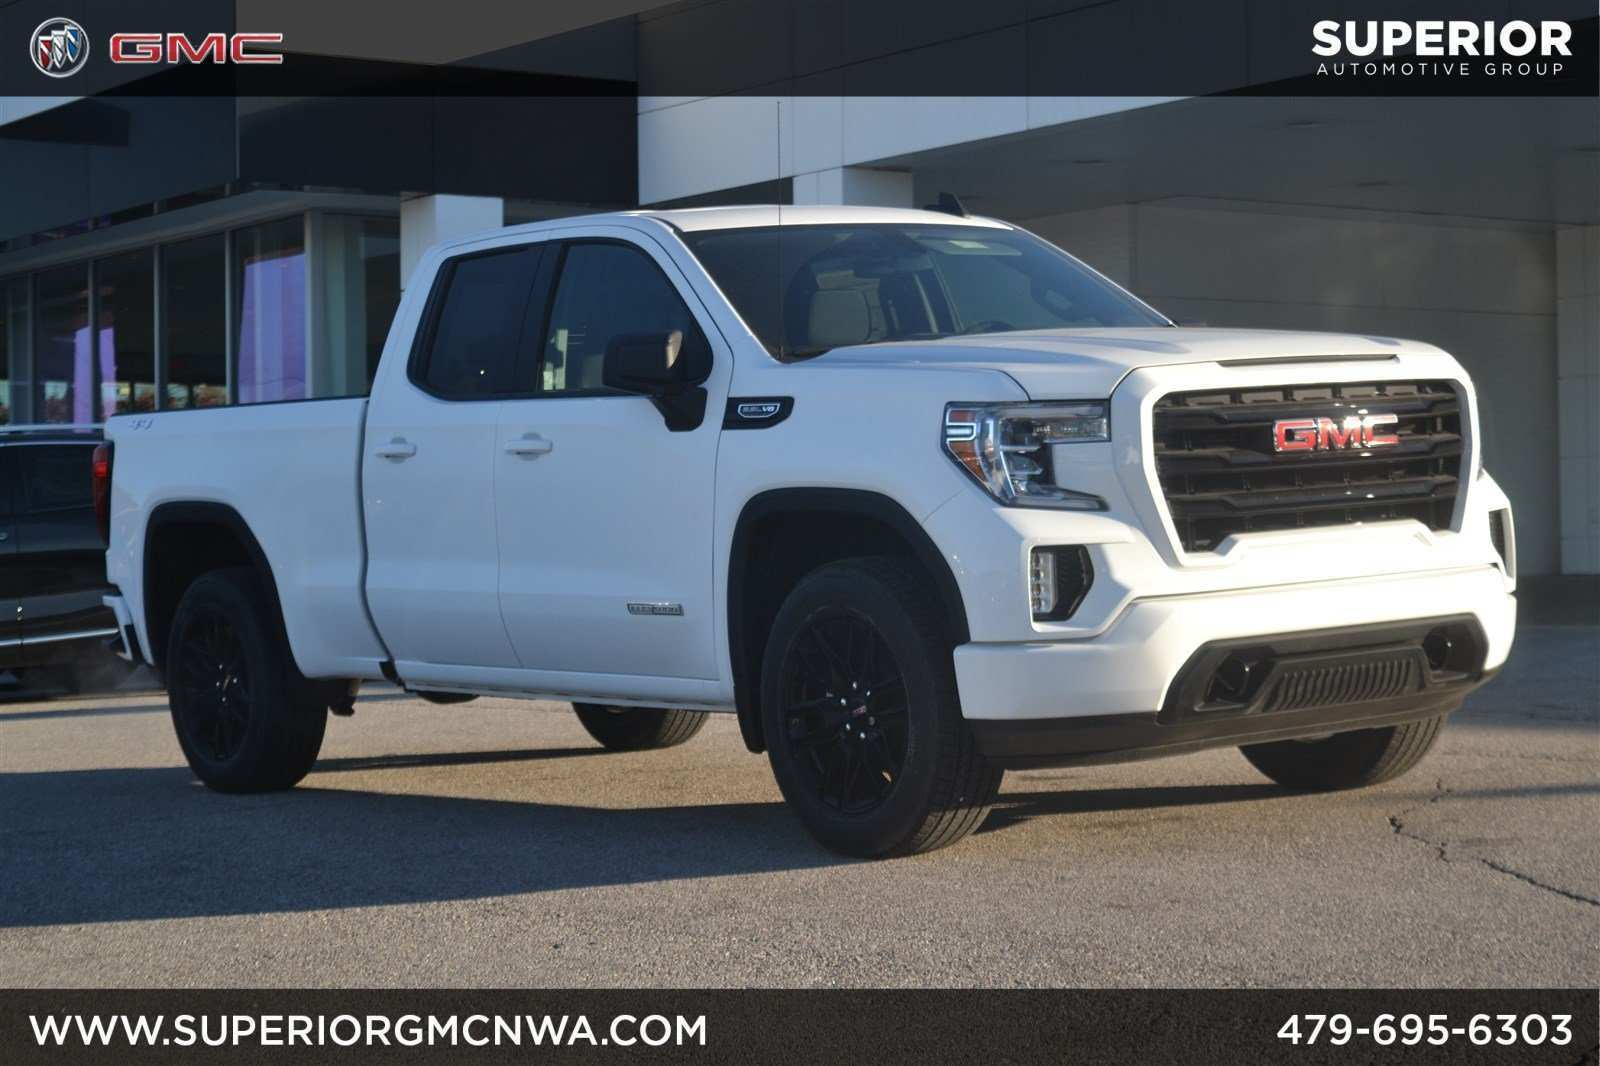 33 New 2019 GMC Sierra 1500 Specs